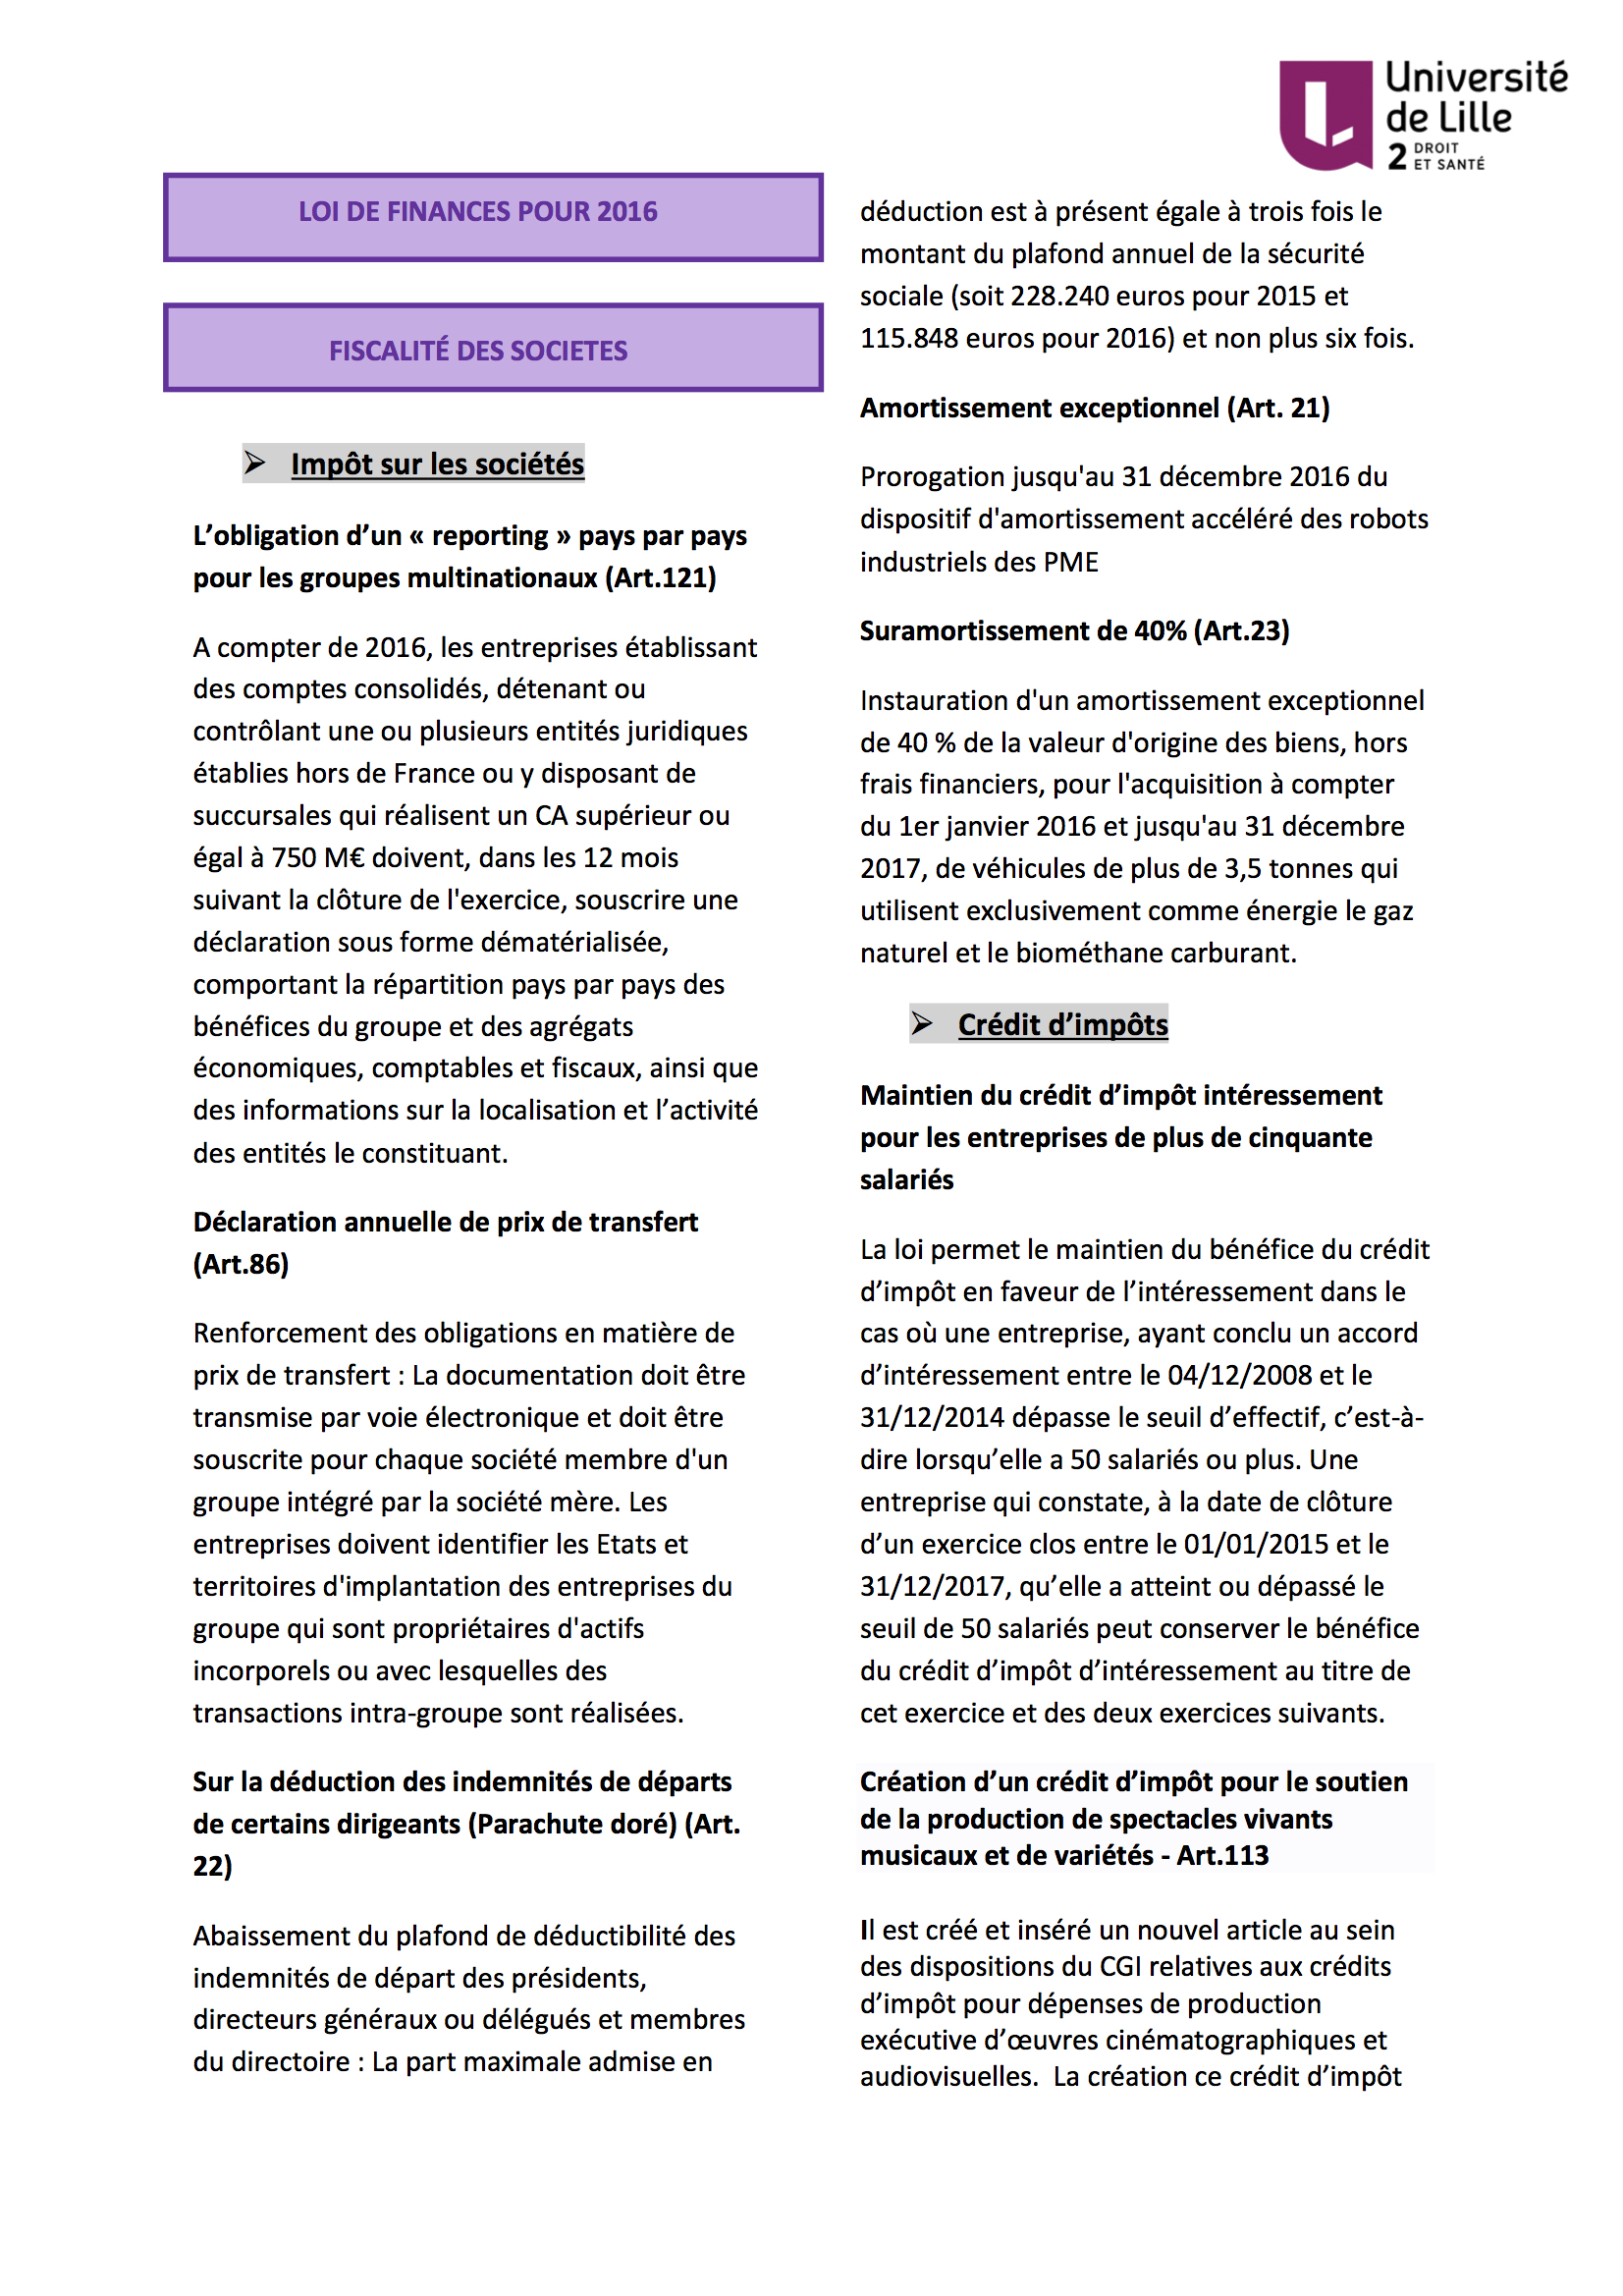 Feuille fiscale n°2